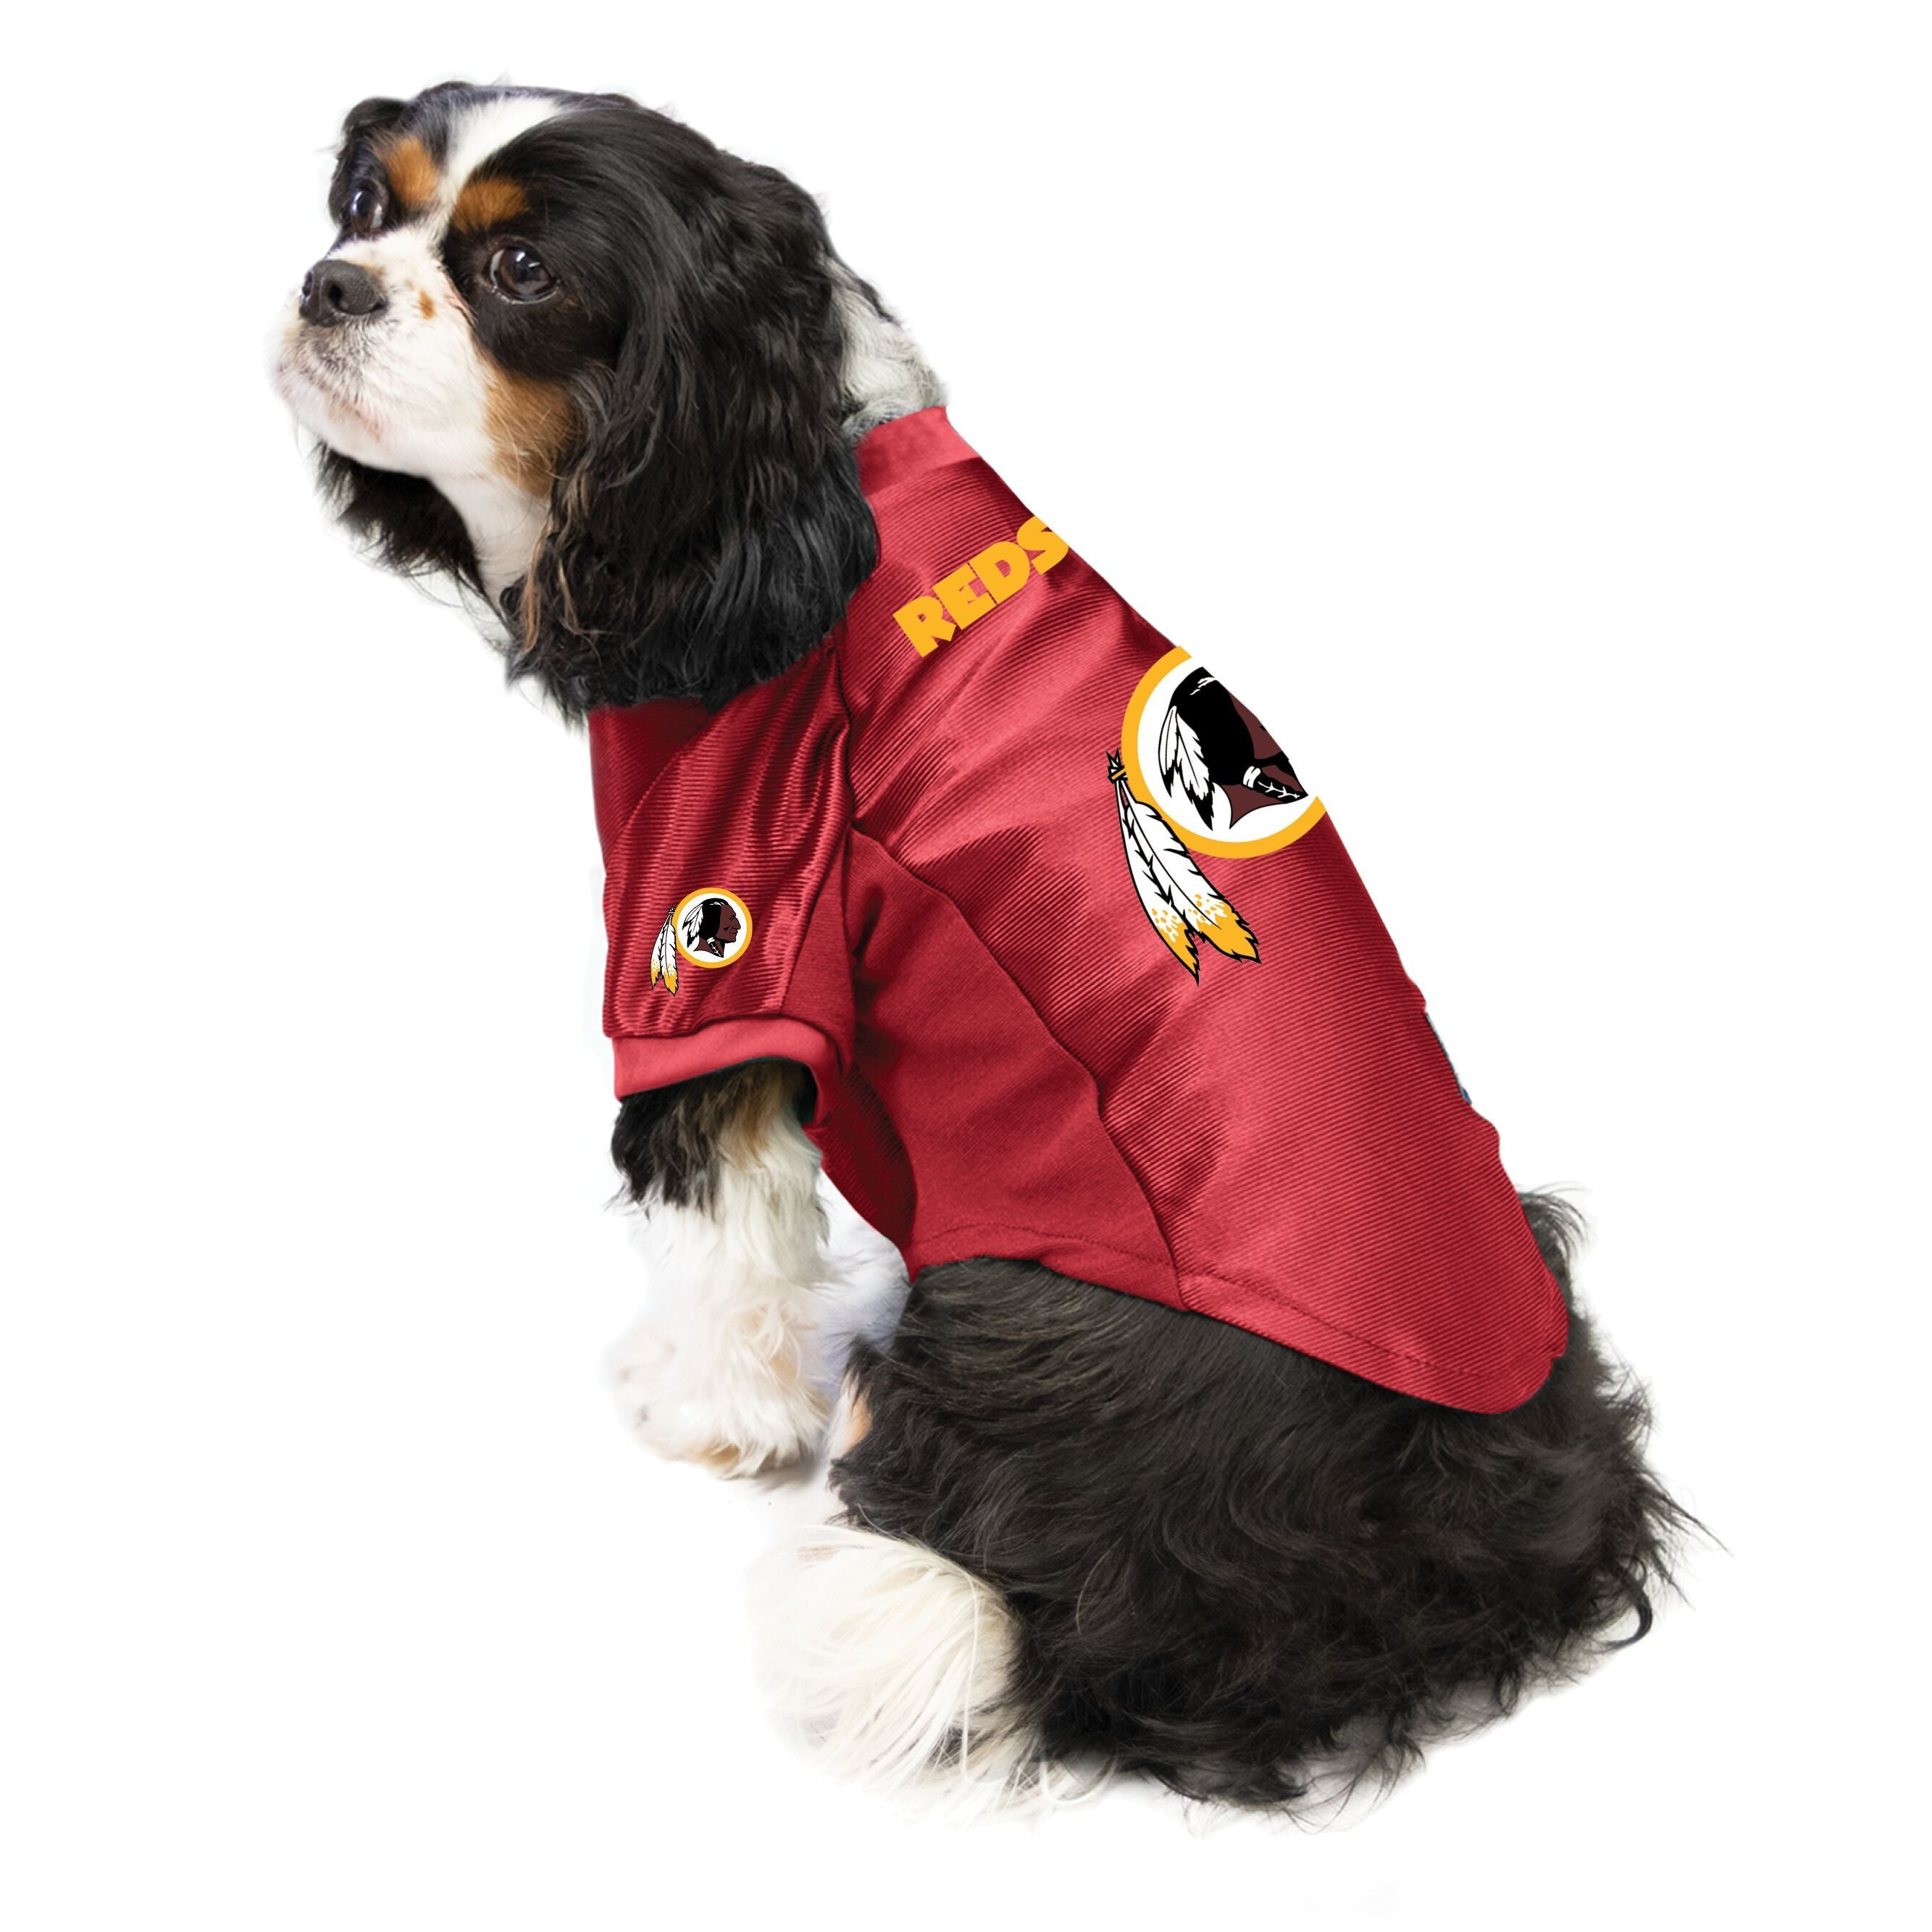 Redskins outfit for dogs